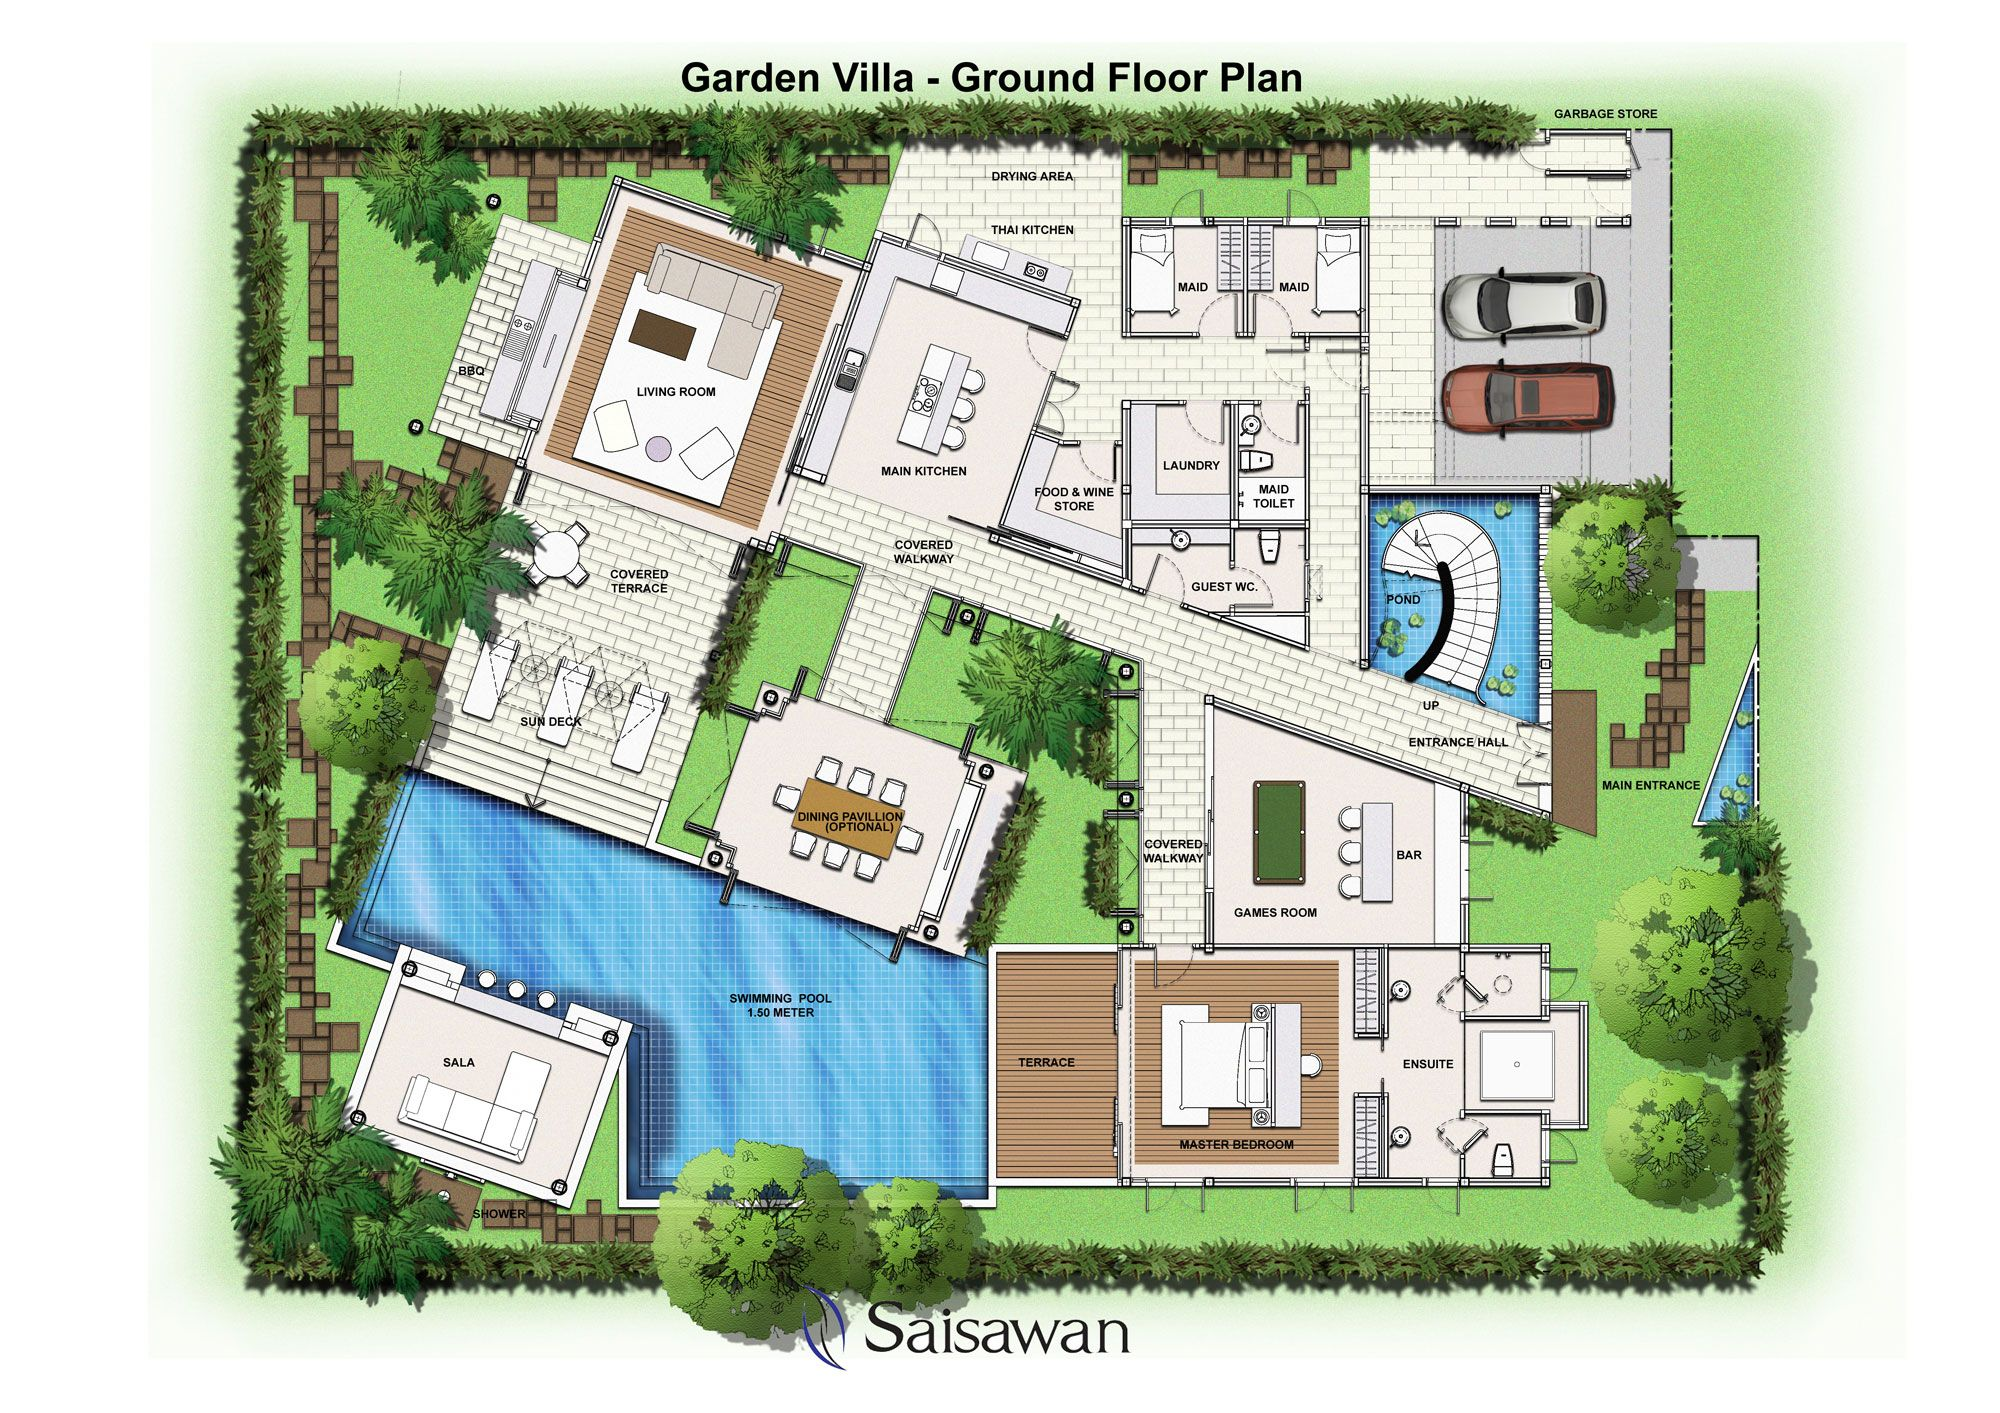 Saisawan garden villas ground floor plan house plans for Villa plans and designs